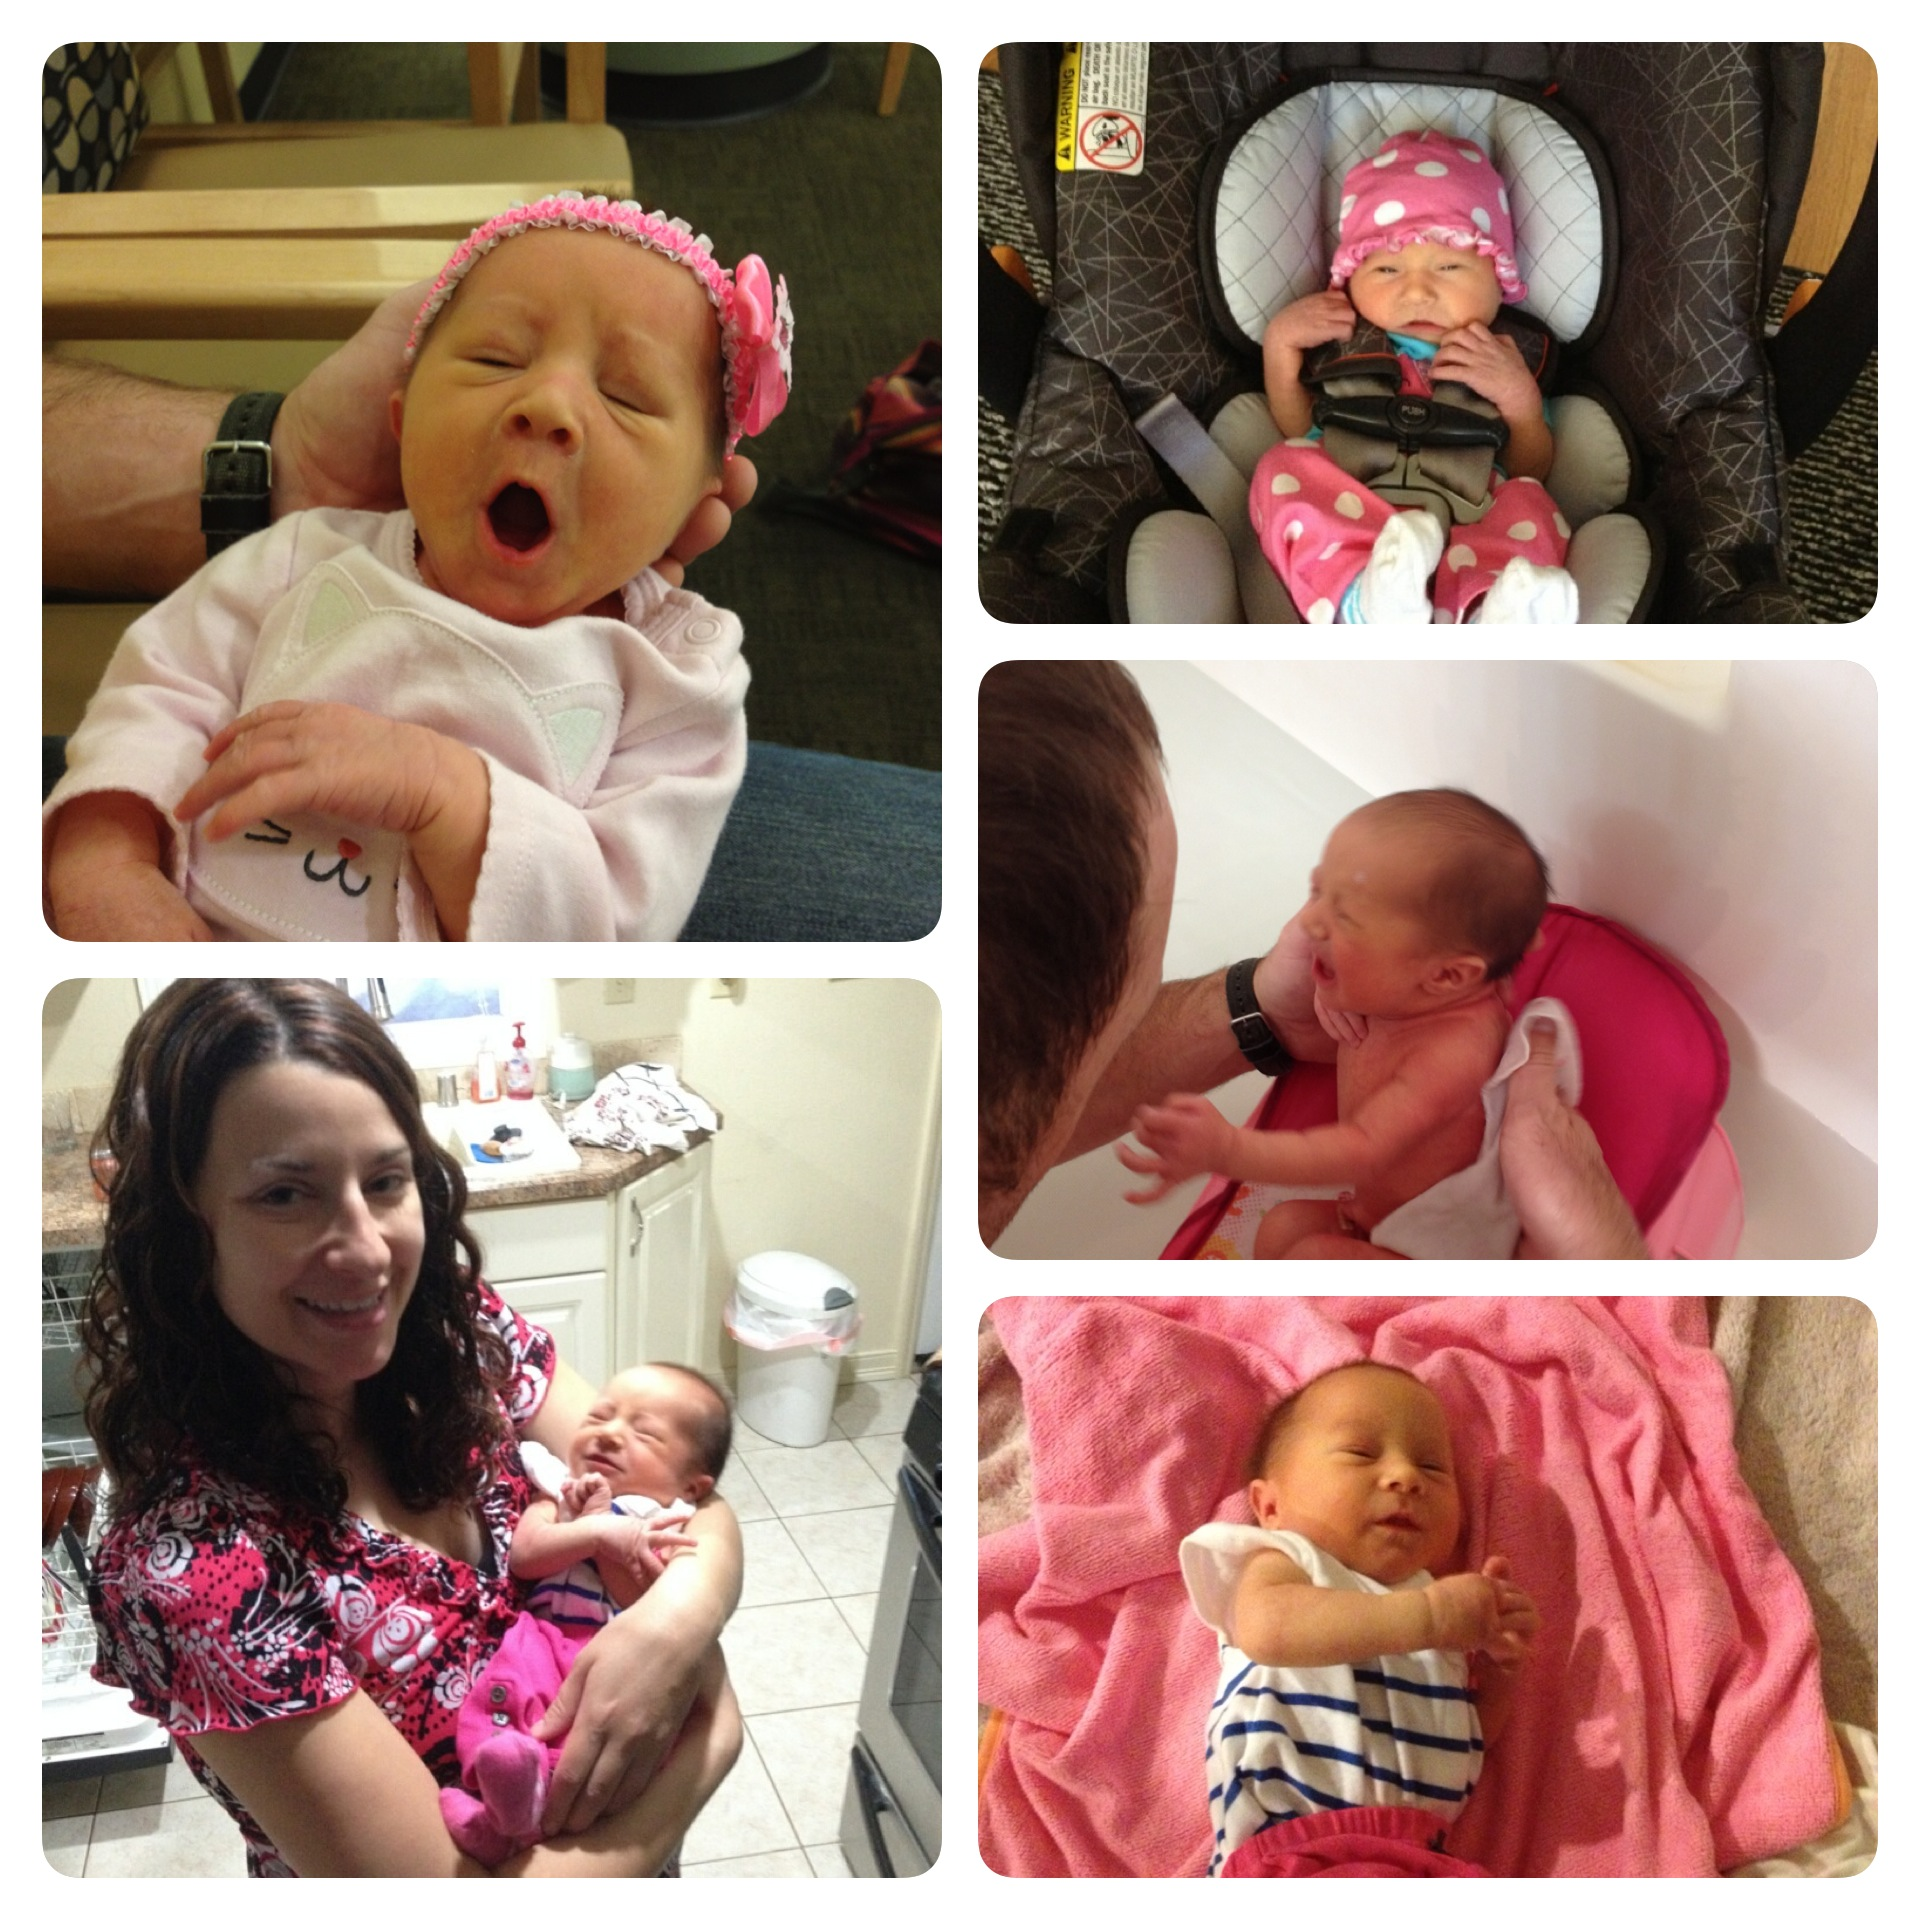 Here are some photos I threw together of my niece, Mikayla. My sister, Miranda, is in the photo on the bottom left.